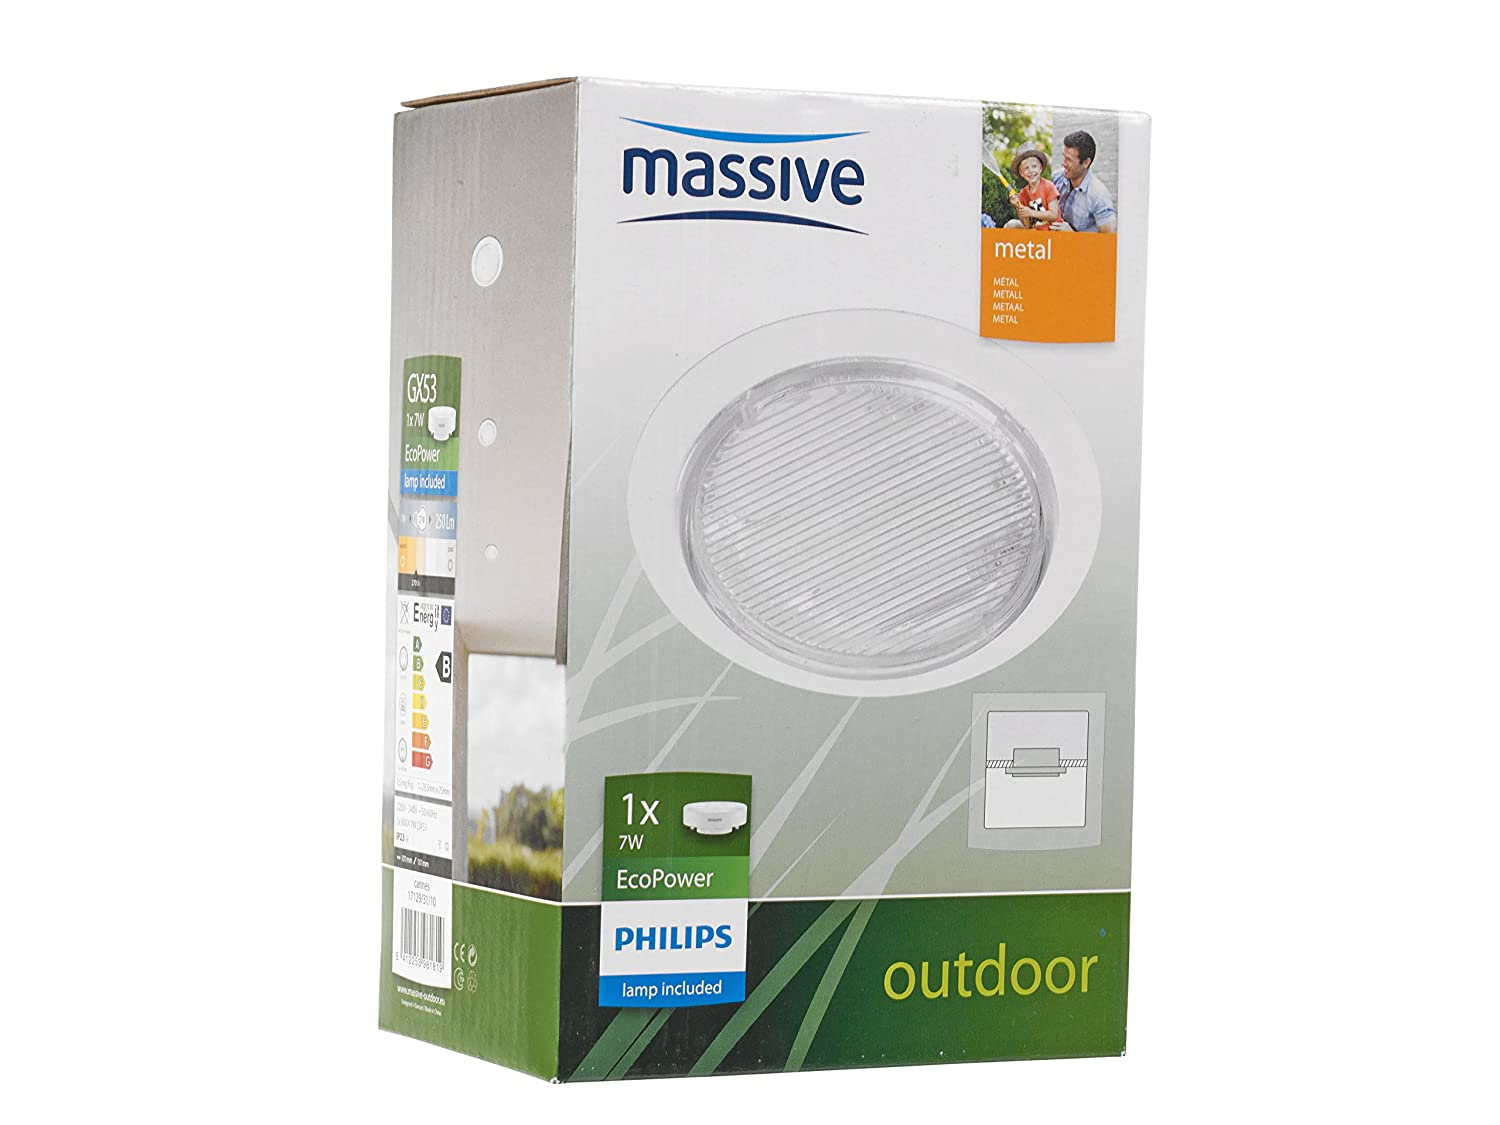 Amazon.com: Philips MASSIVE Outdoor Light For Wall Or ...